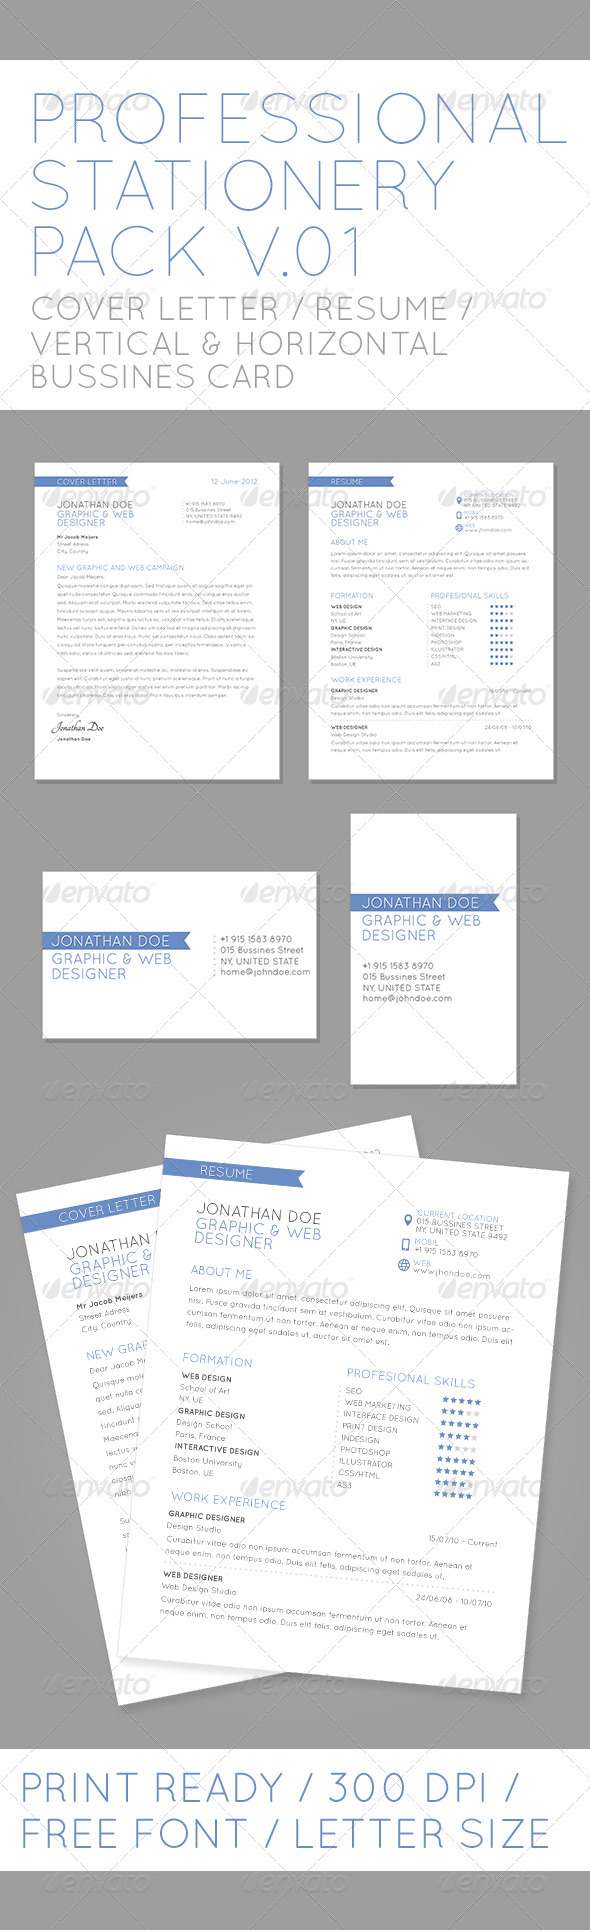 Profesional Stationery Pack V01 - Stationery Print Templates